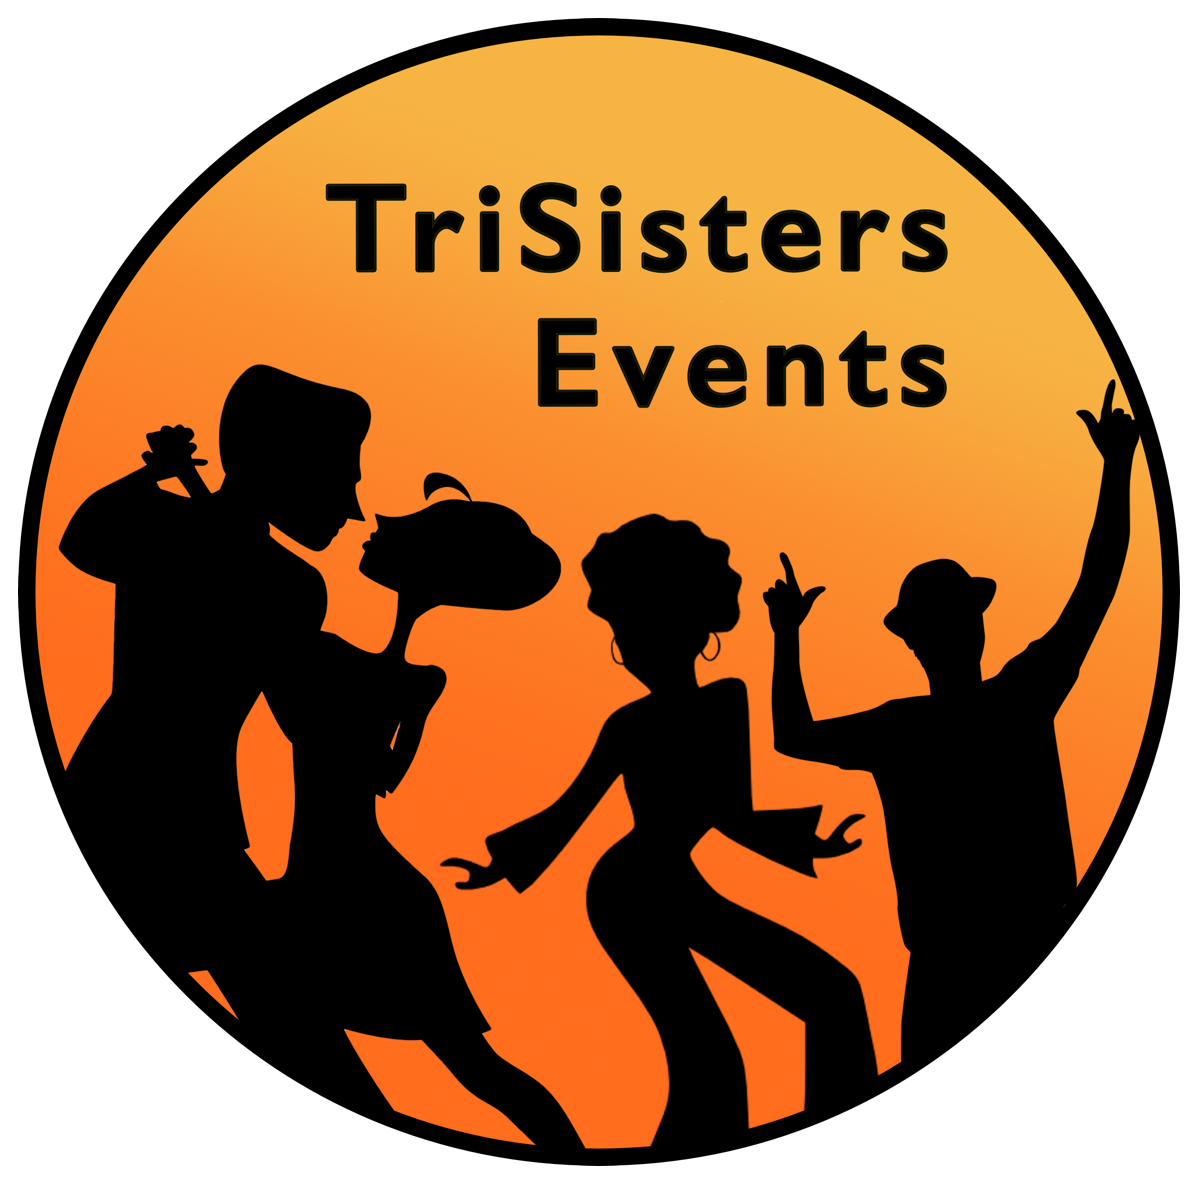 TriSisters Events